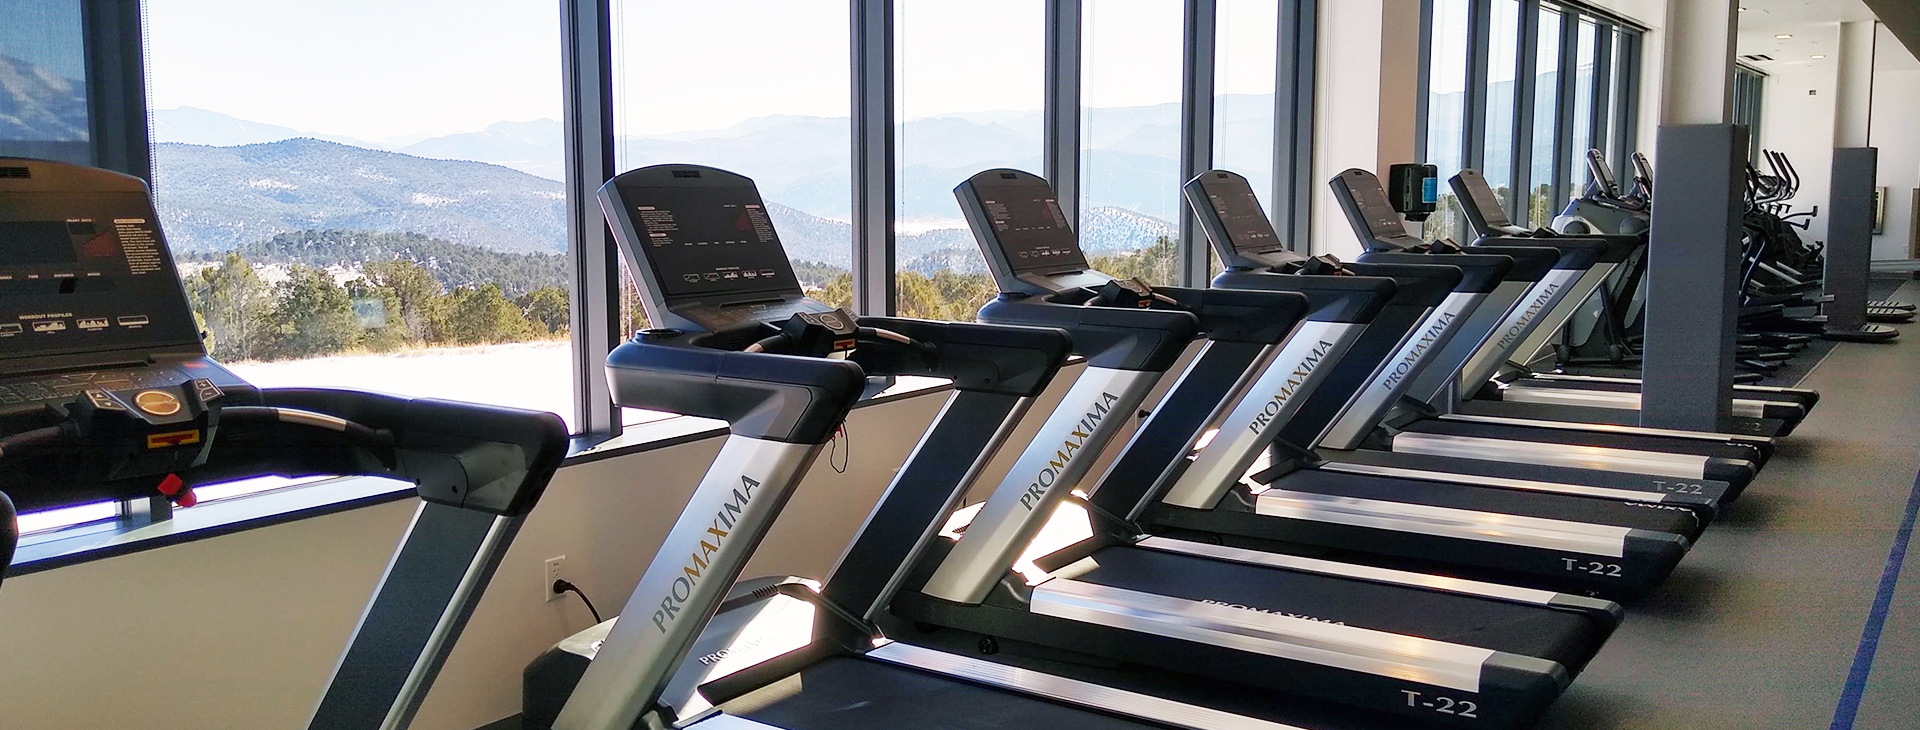 Cardio equipment at every capacity